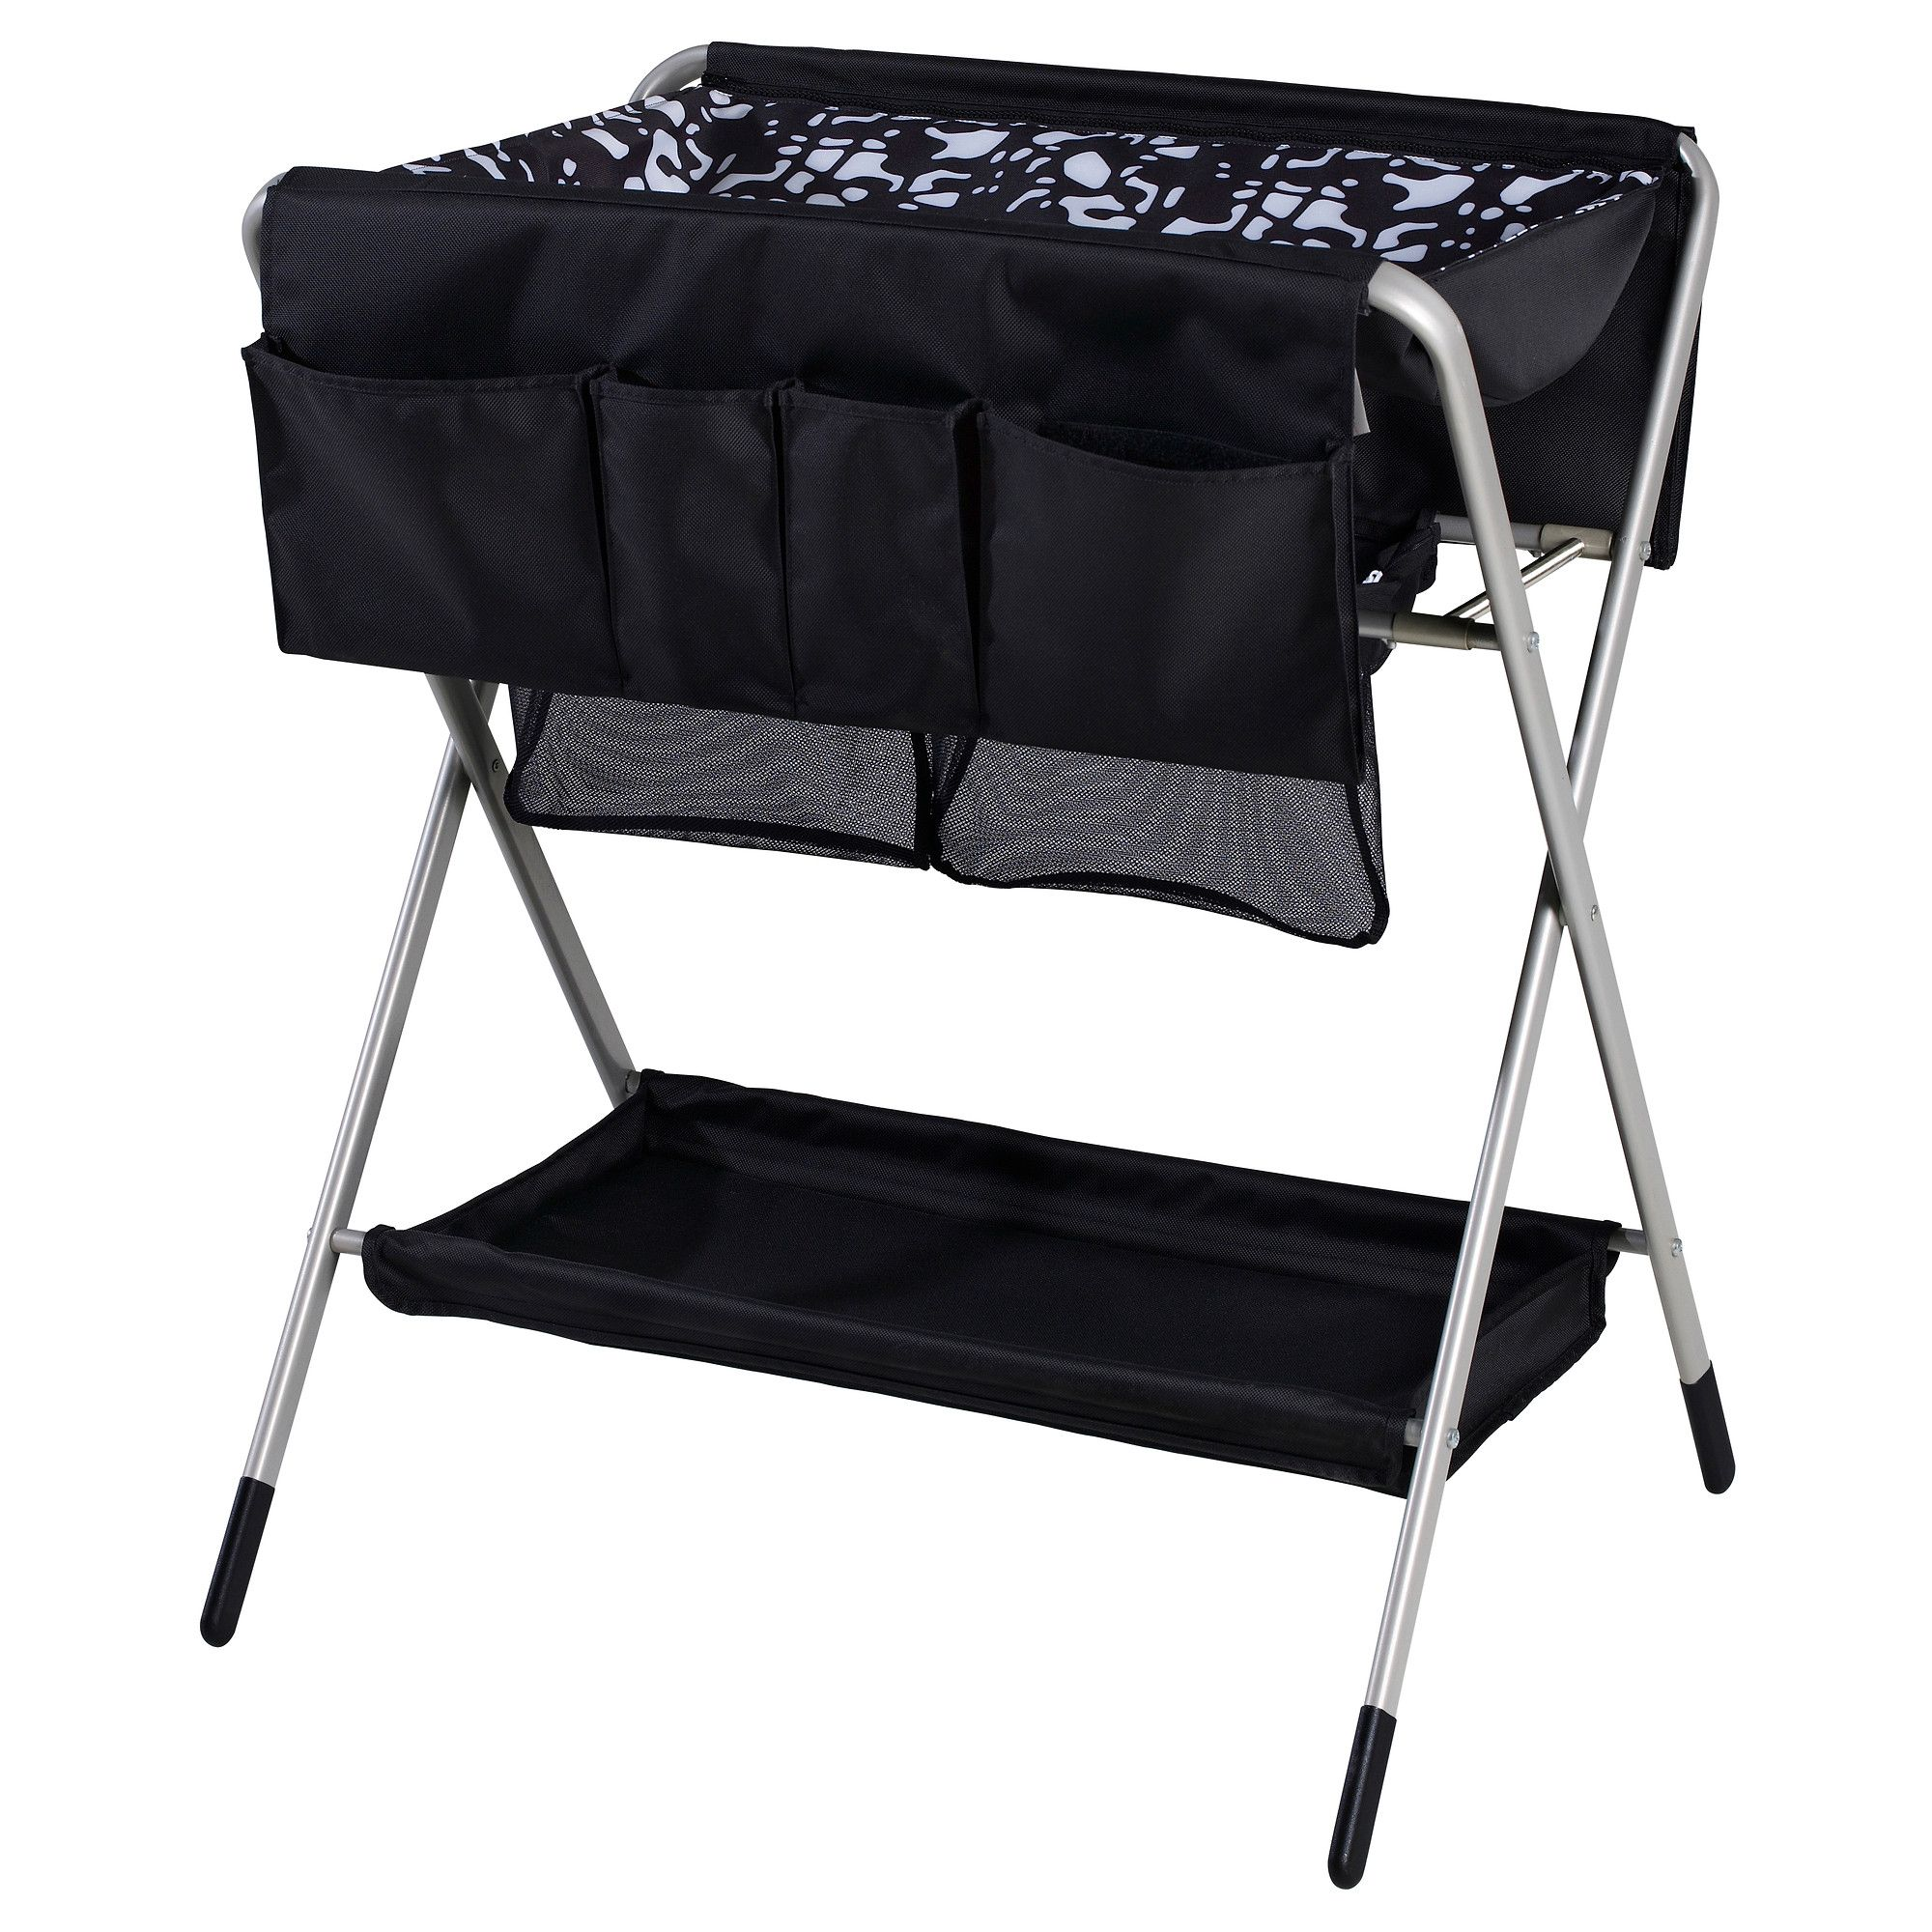 Ikea Spoling Fold Up Changing Table Great Non Permanent For Small Es Also Handy If You Want To Move It Around The House